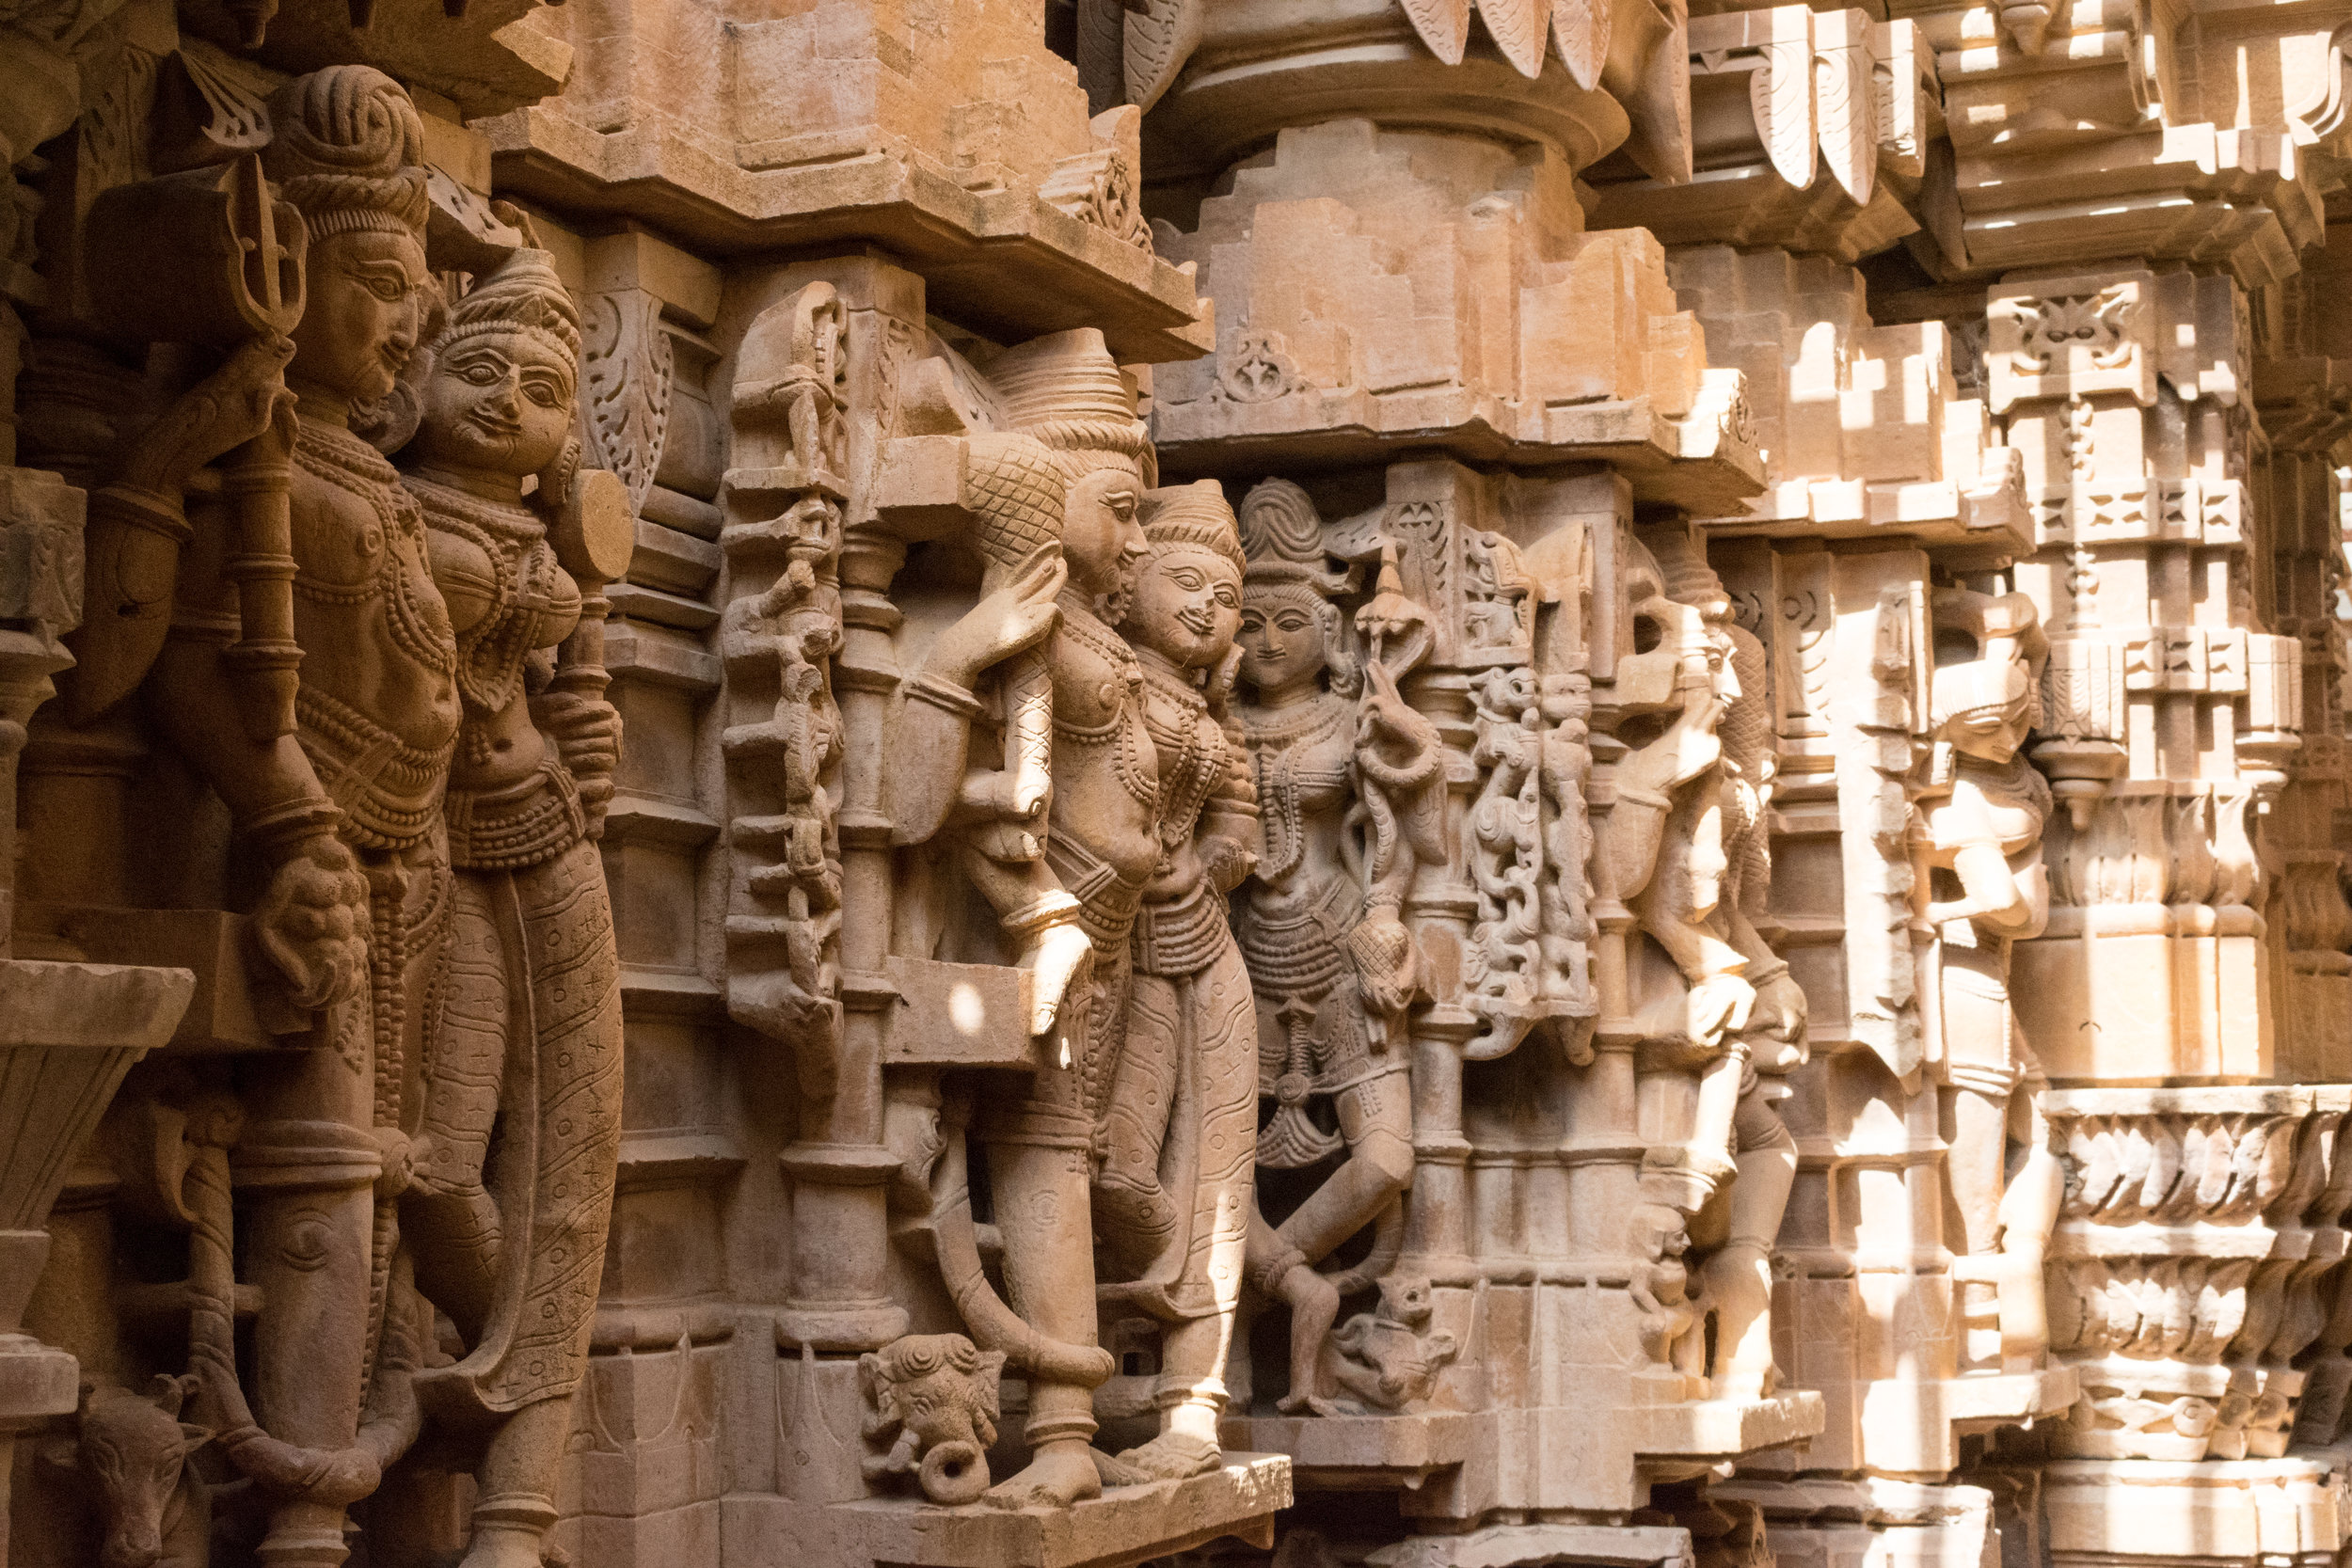 Hundreds Of Figures Adorn The Walls Of The Jain Temple In Jaisalmer In India